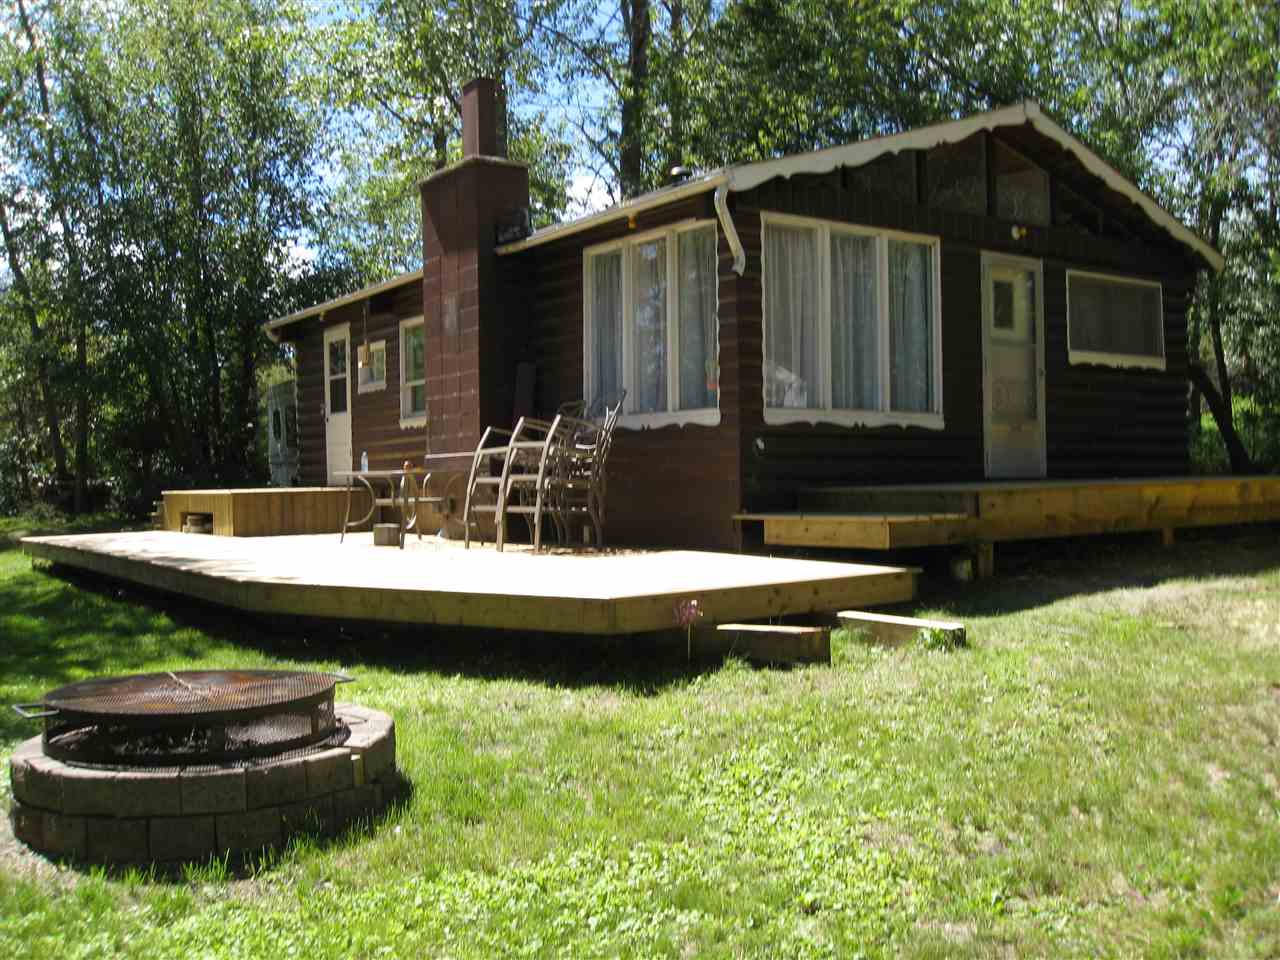 This 3 bedroom partially serviced cottage just needs the natural gas to be added then all the services would be ready to go from April to October. Has a 500 gallon cistern and a 750 gallon holding tank. This home has the original hardwood flooring and log siding to keep the rustic look for this 3 season cottage. Comes with an additional lot beside it which is also included. There are 2 Lawn Mowers and Patio Furniture which will be included in the price.This is a very private recreational property and is looking for new owners!!